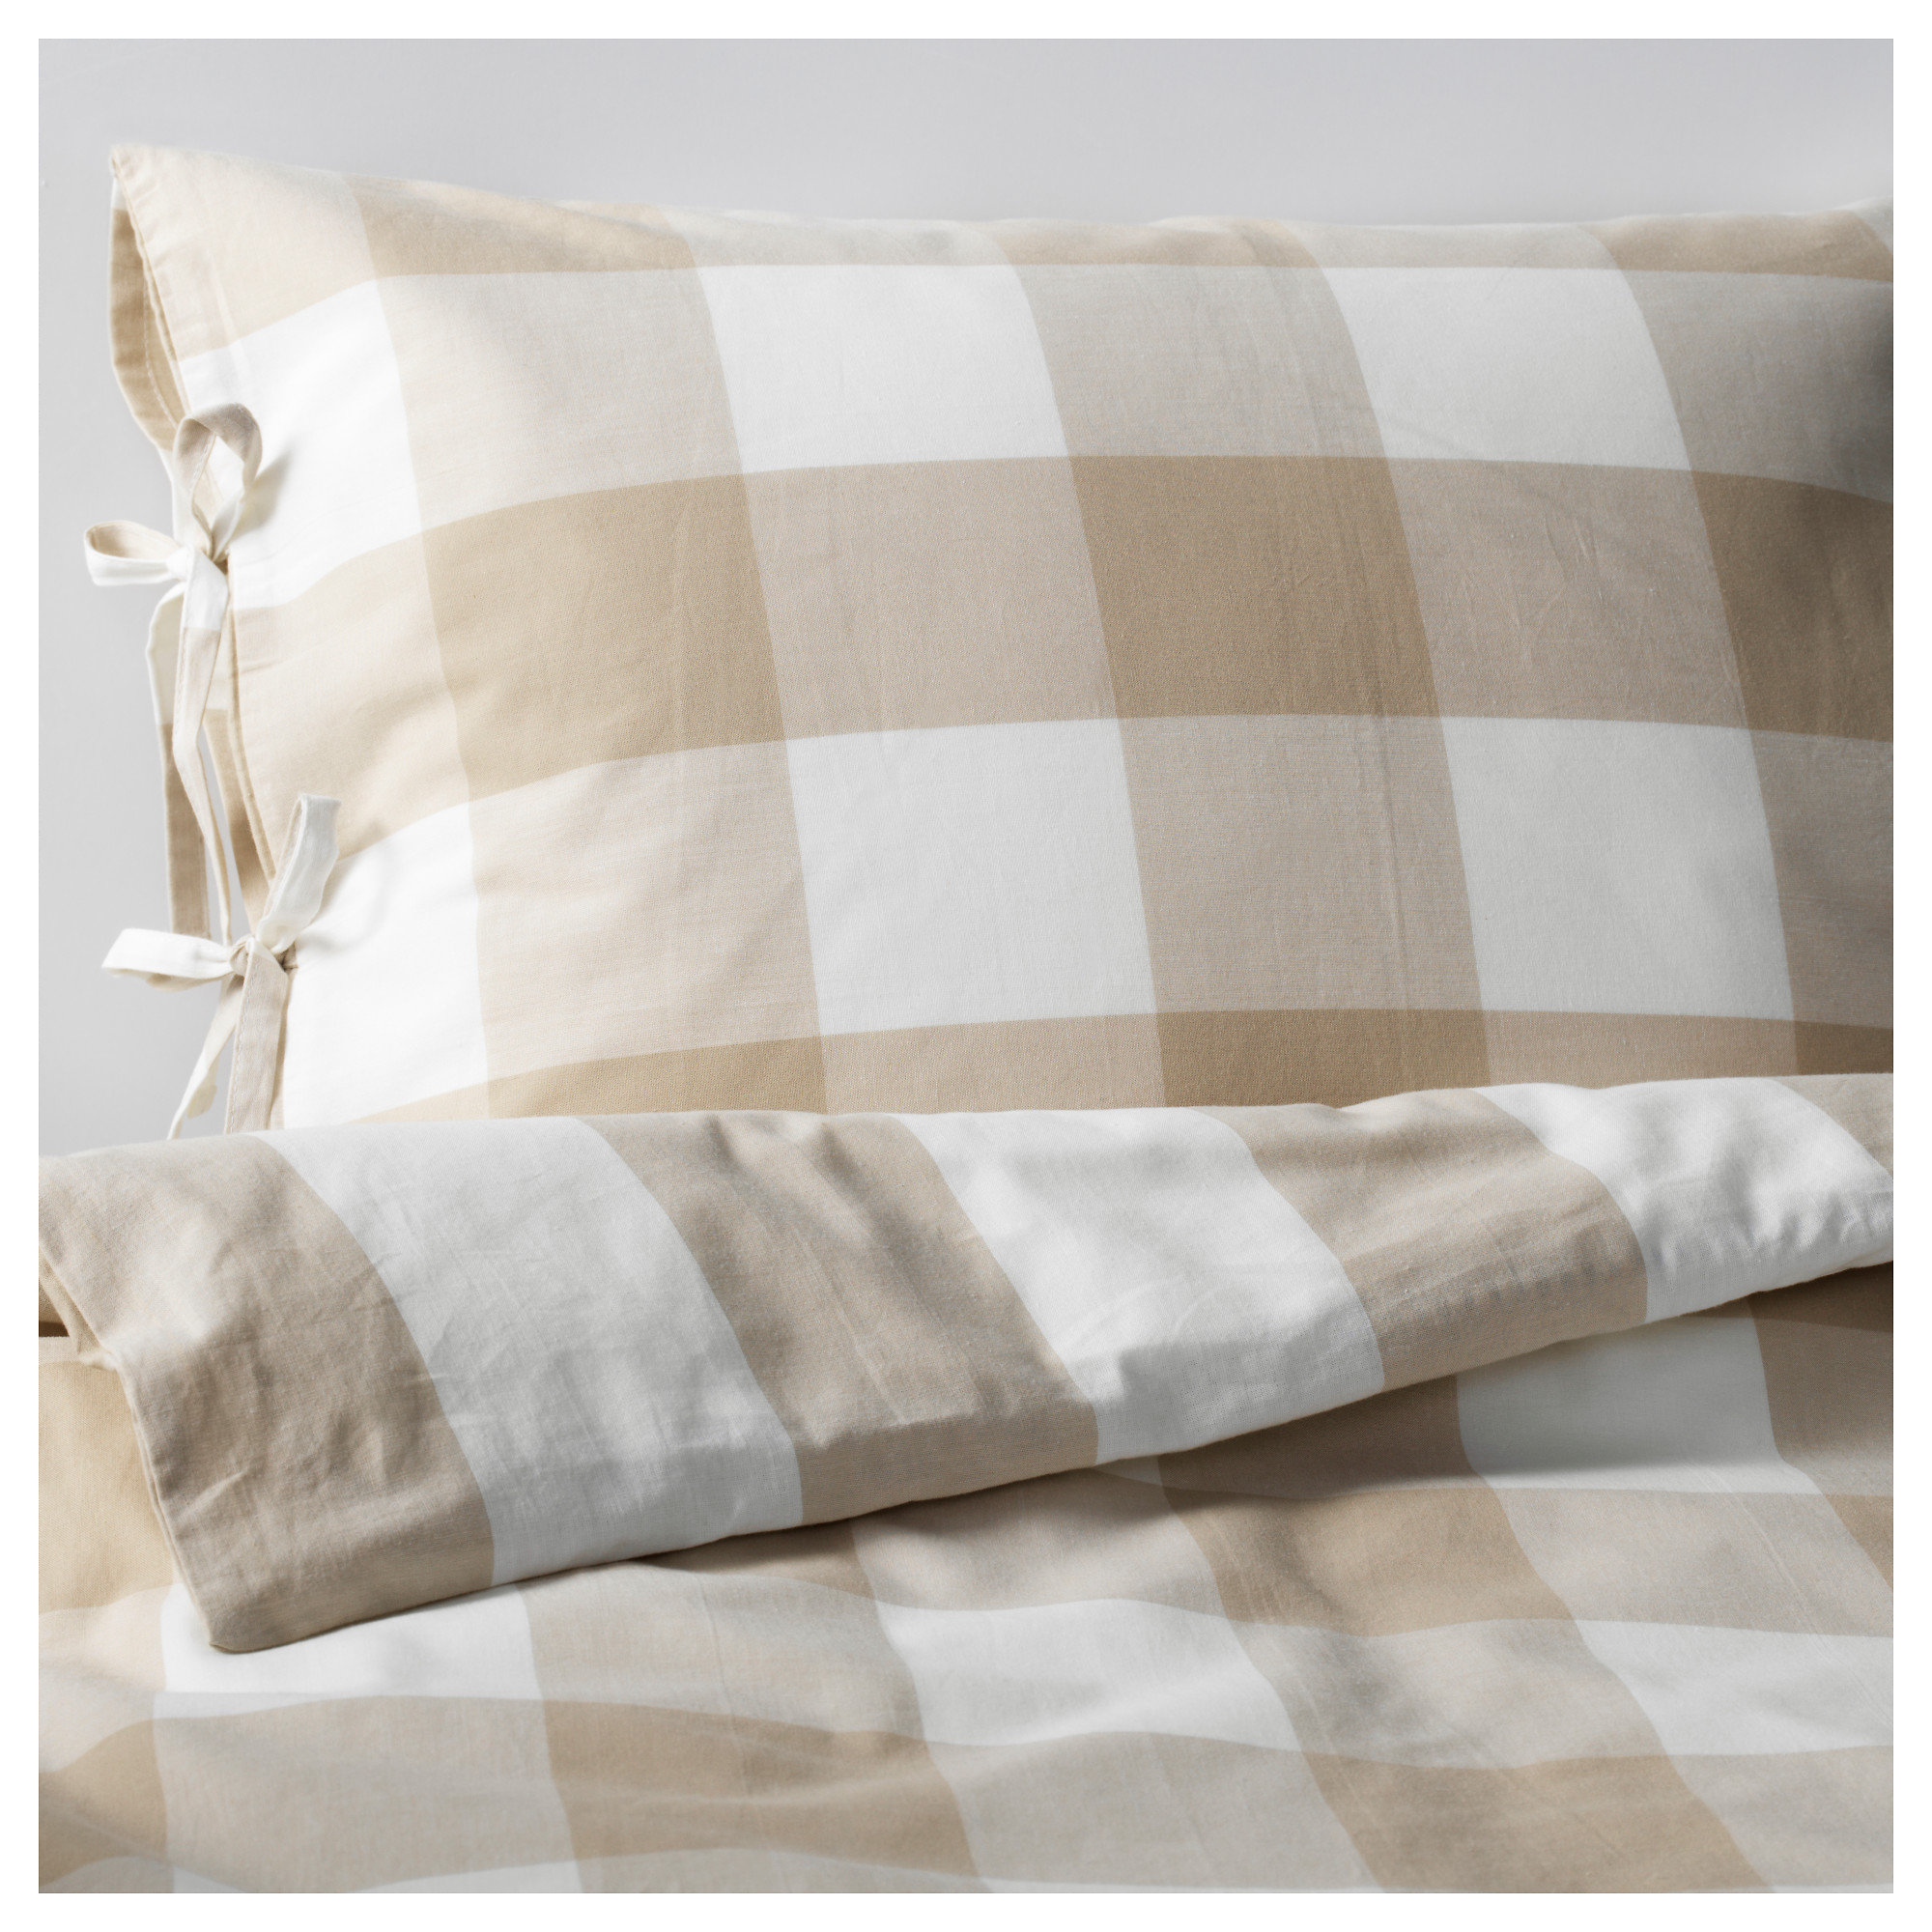 emmie ruta duvet cover and pillowcases beige white thread count